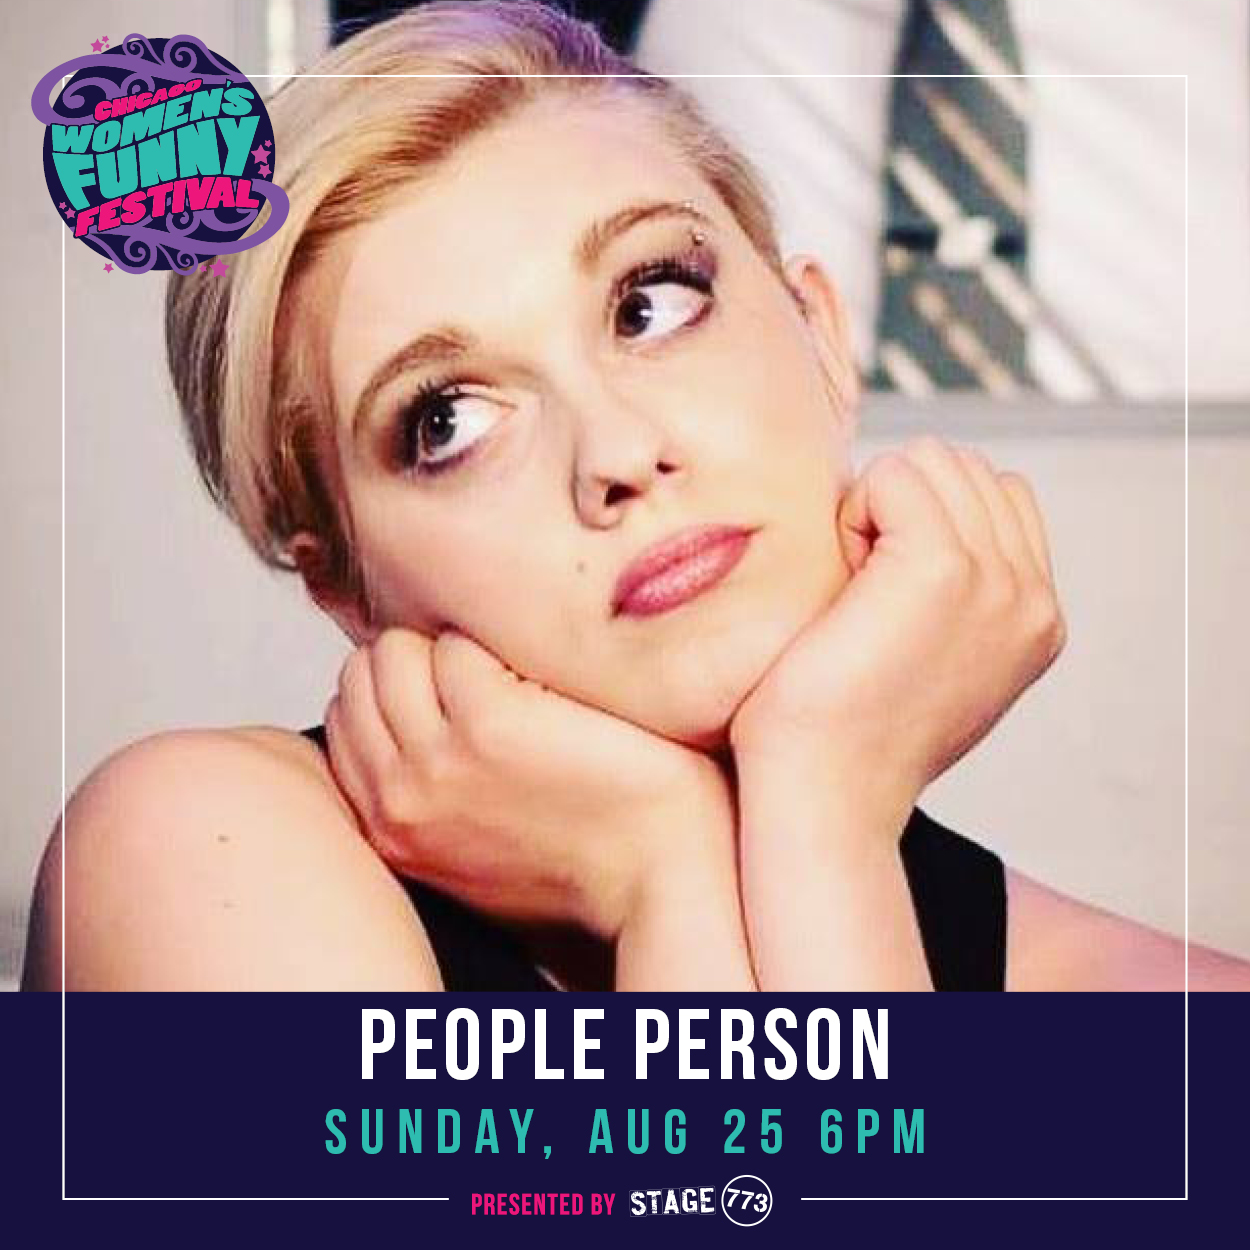 PeoplePerson_Sunday_6PM_CWFF20197.jpg